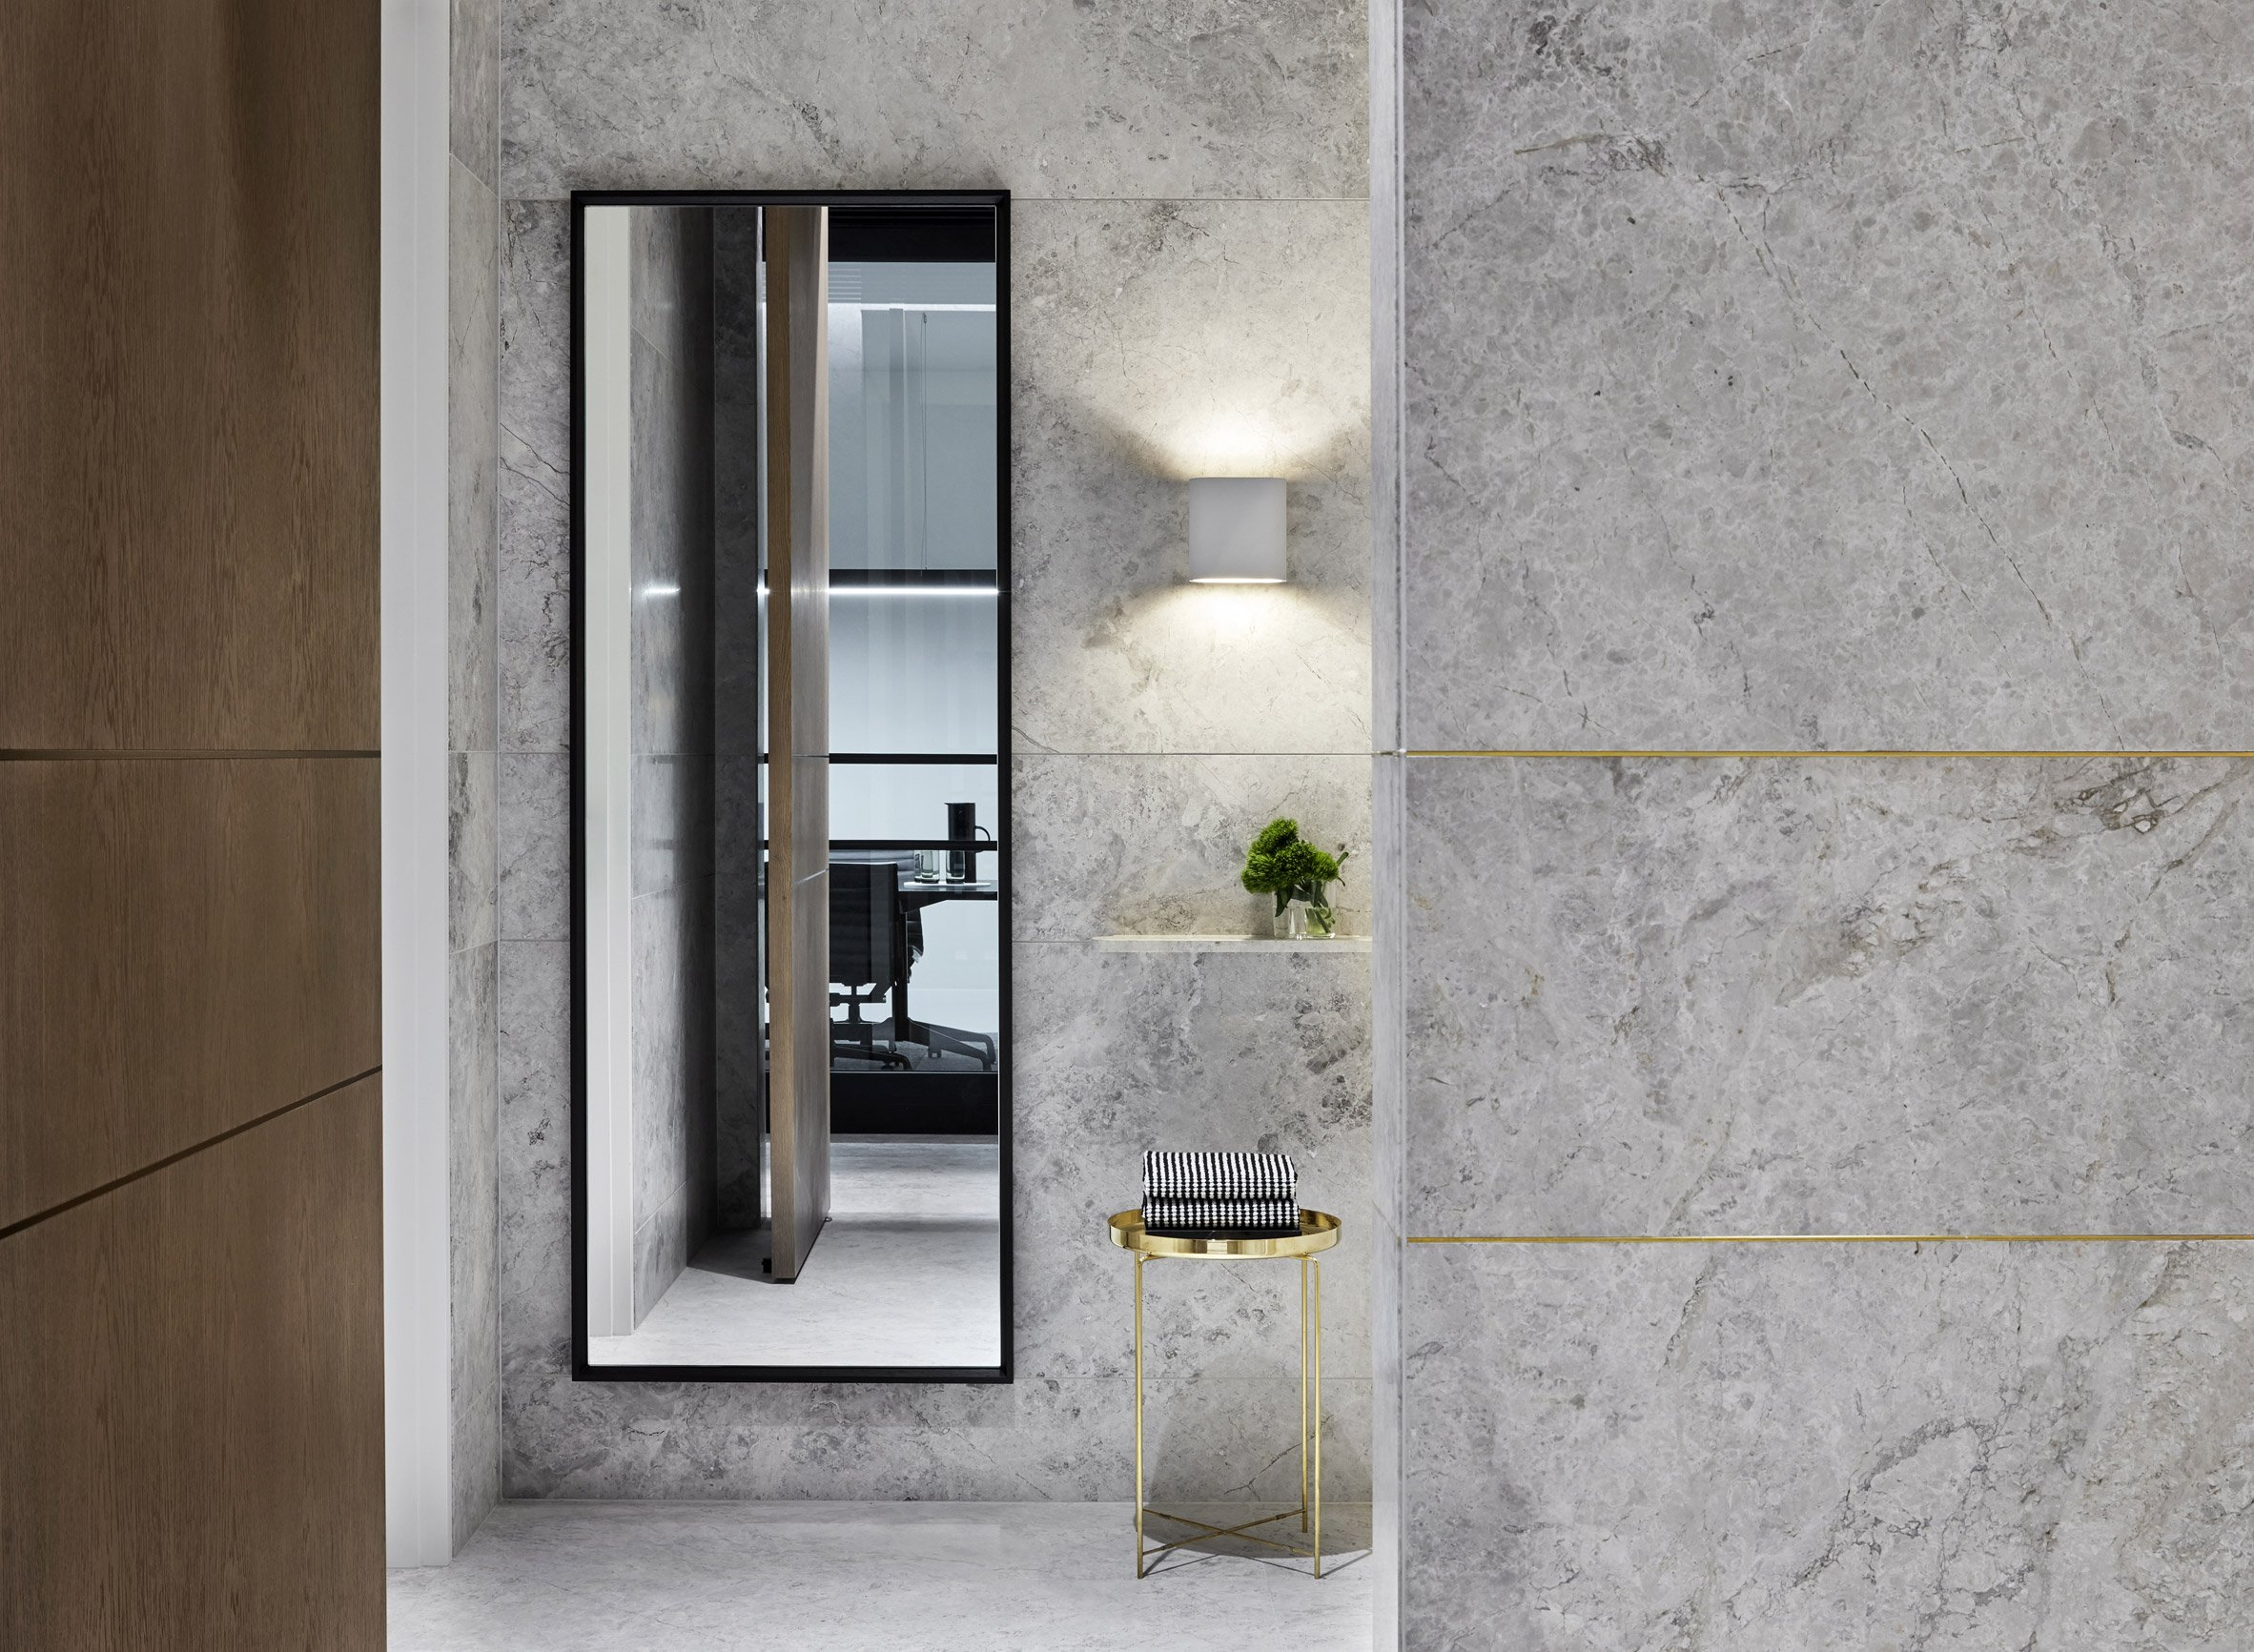 Studio Tate Incorporates Luxurious Details into PDG's Melbourne Office color of the year for 2019 Pantone Has Released Their Color of The Year For 2019 Studio Tate Incorporates Luxurious Details into PDGs Workspace 6 color of the year for 2019 Pantone Has Released Their Color of The Year For 2019 Studio Tate Incorporates Luxurious Details into PDGs Workspace 6